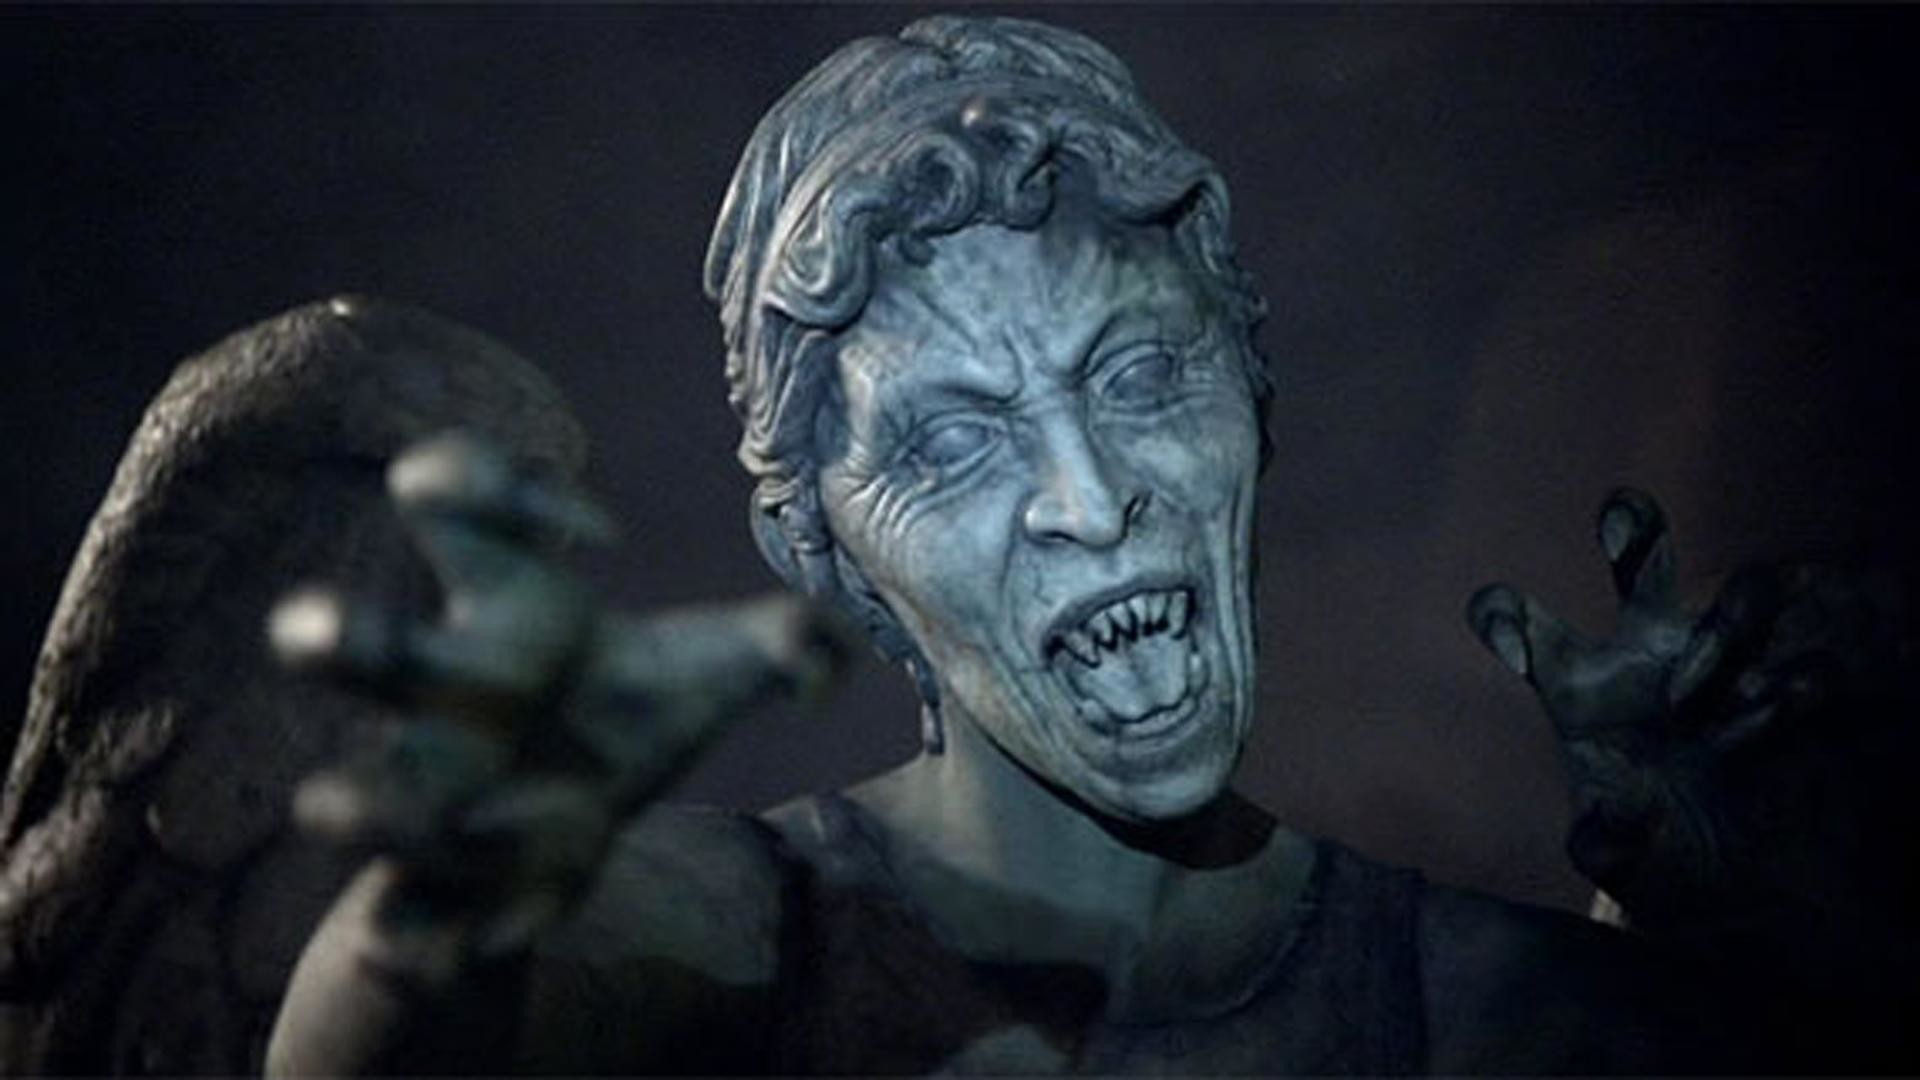 weeping angels wallpaper hd (69+ images)